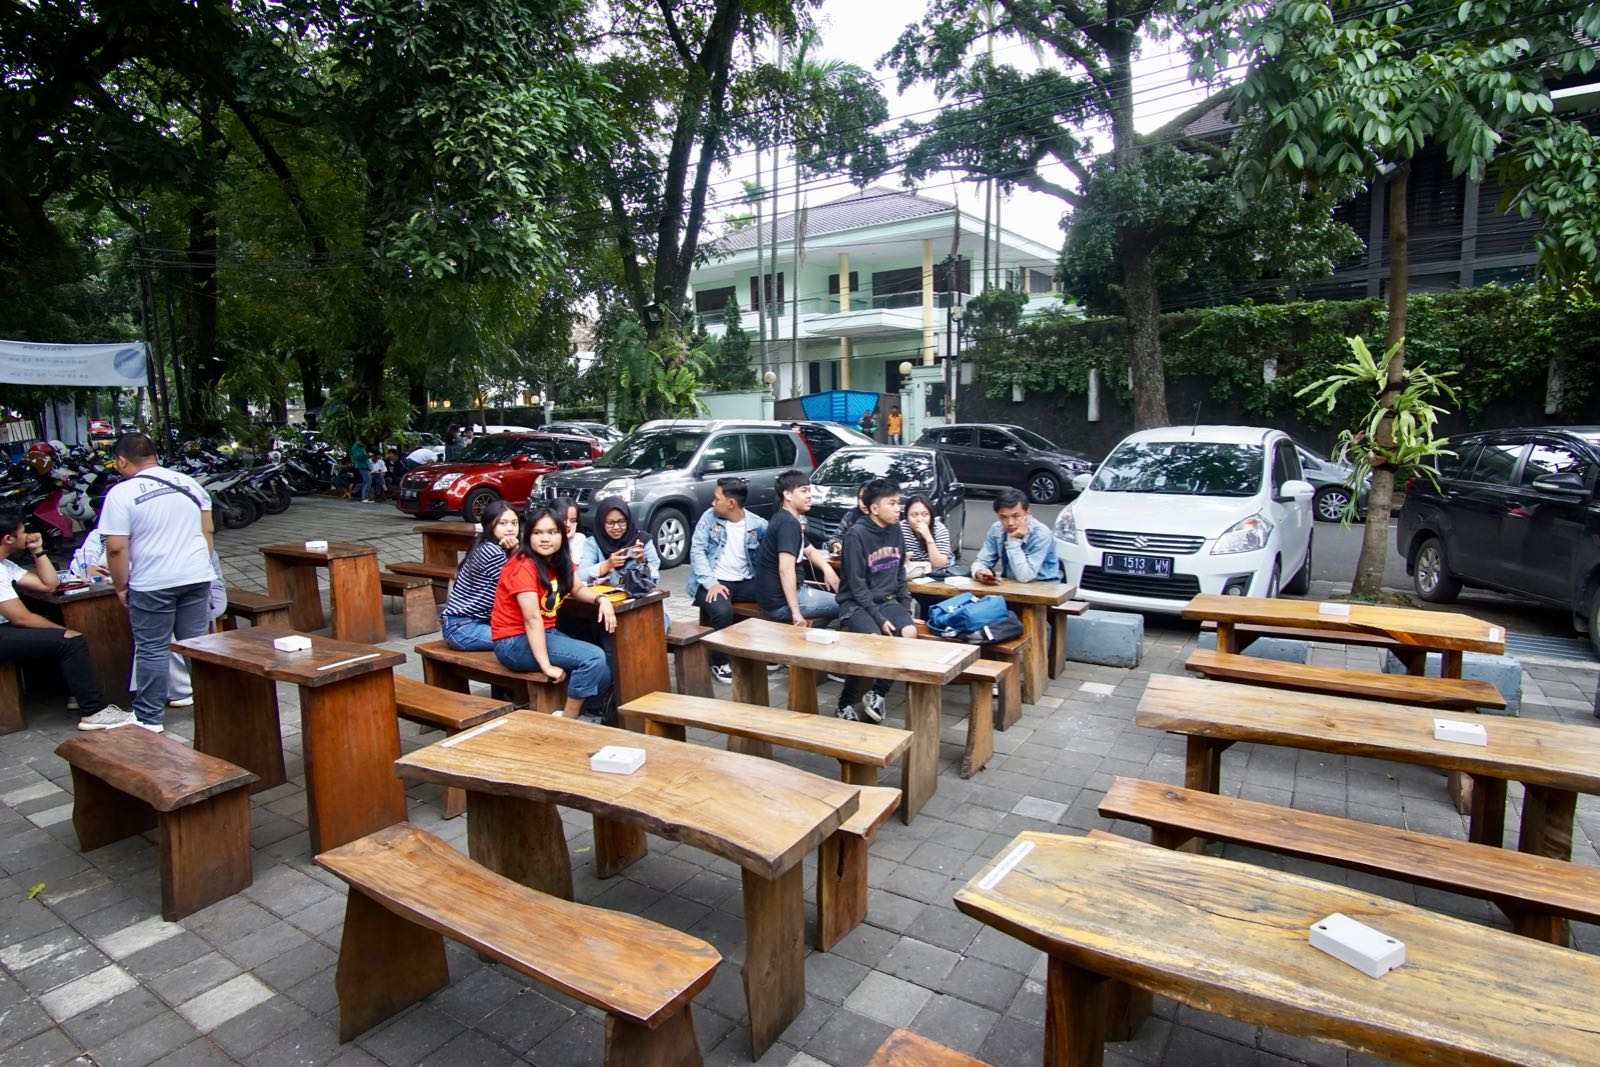 Front of Gajua Kopi Bandung with wooden tables